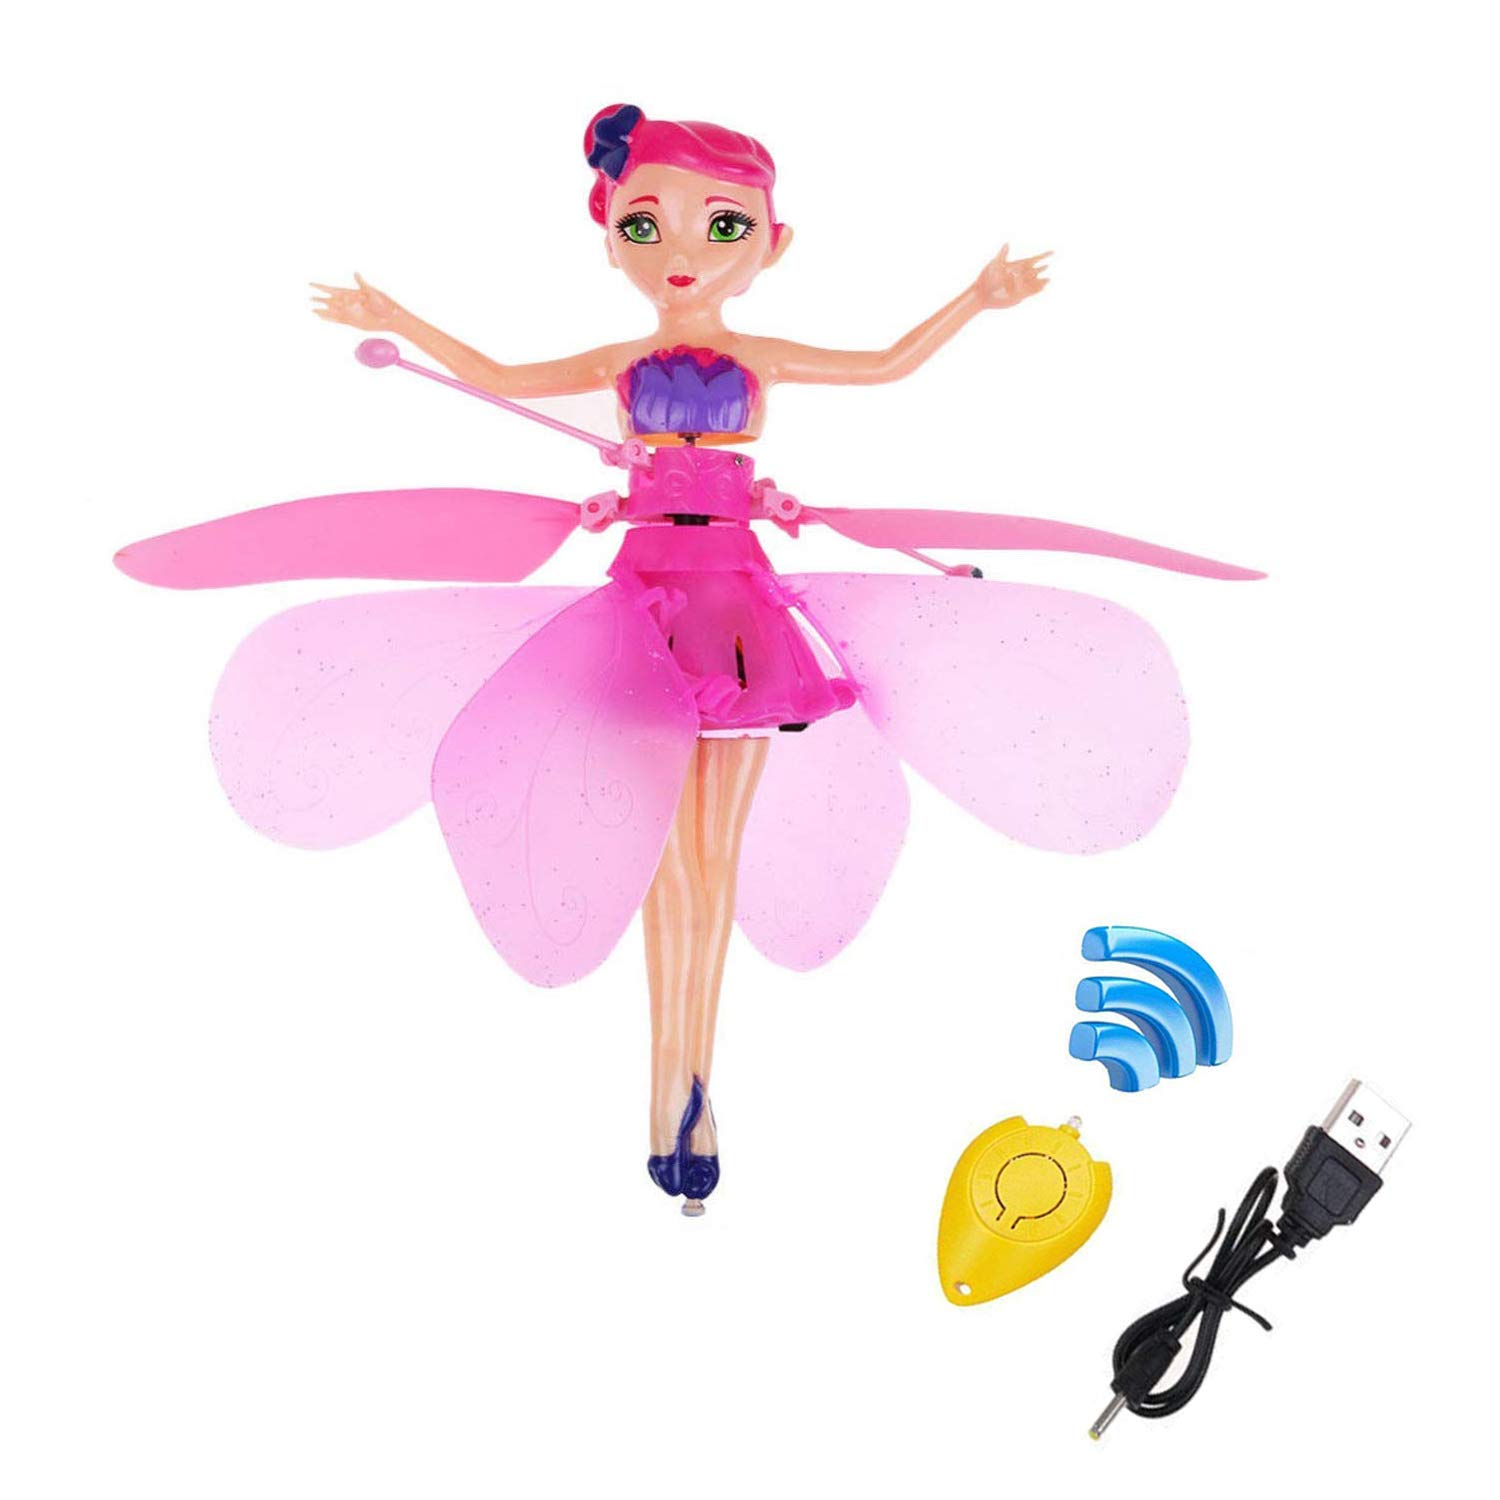 MinaLu Flying Fairy Doll for Girls 6 Years Old,Infrared Induction Teen Toys Flying Princess Doll and Remote Control by MinaLu (Image #1)